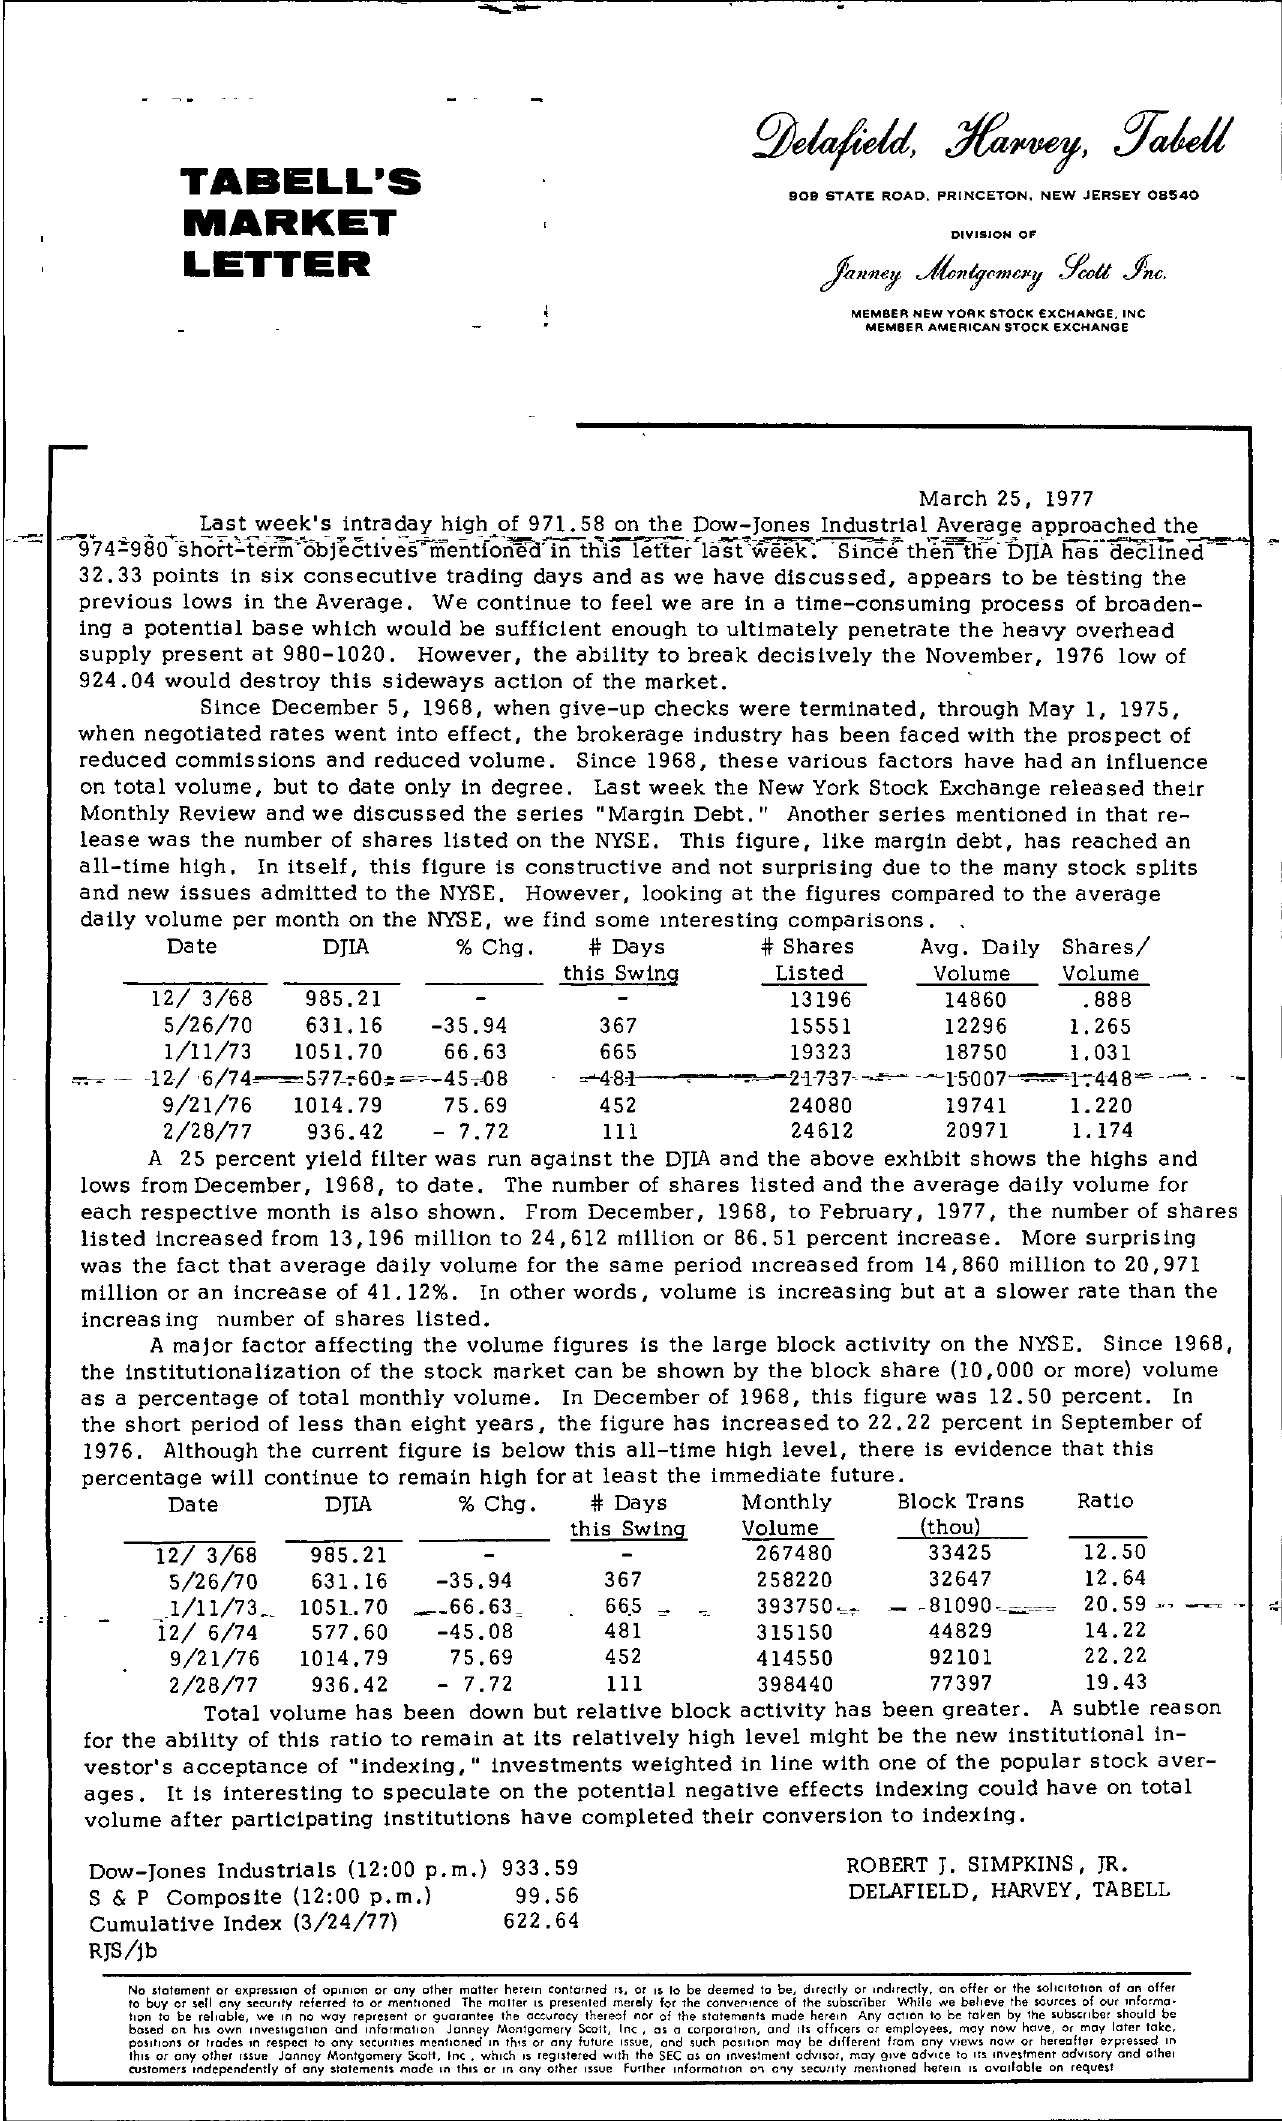 Tabell's Market Letter - March 25, 1977